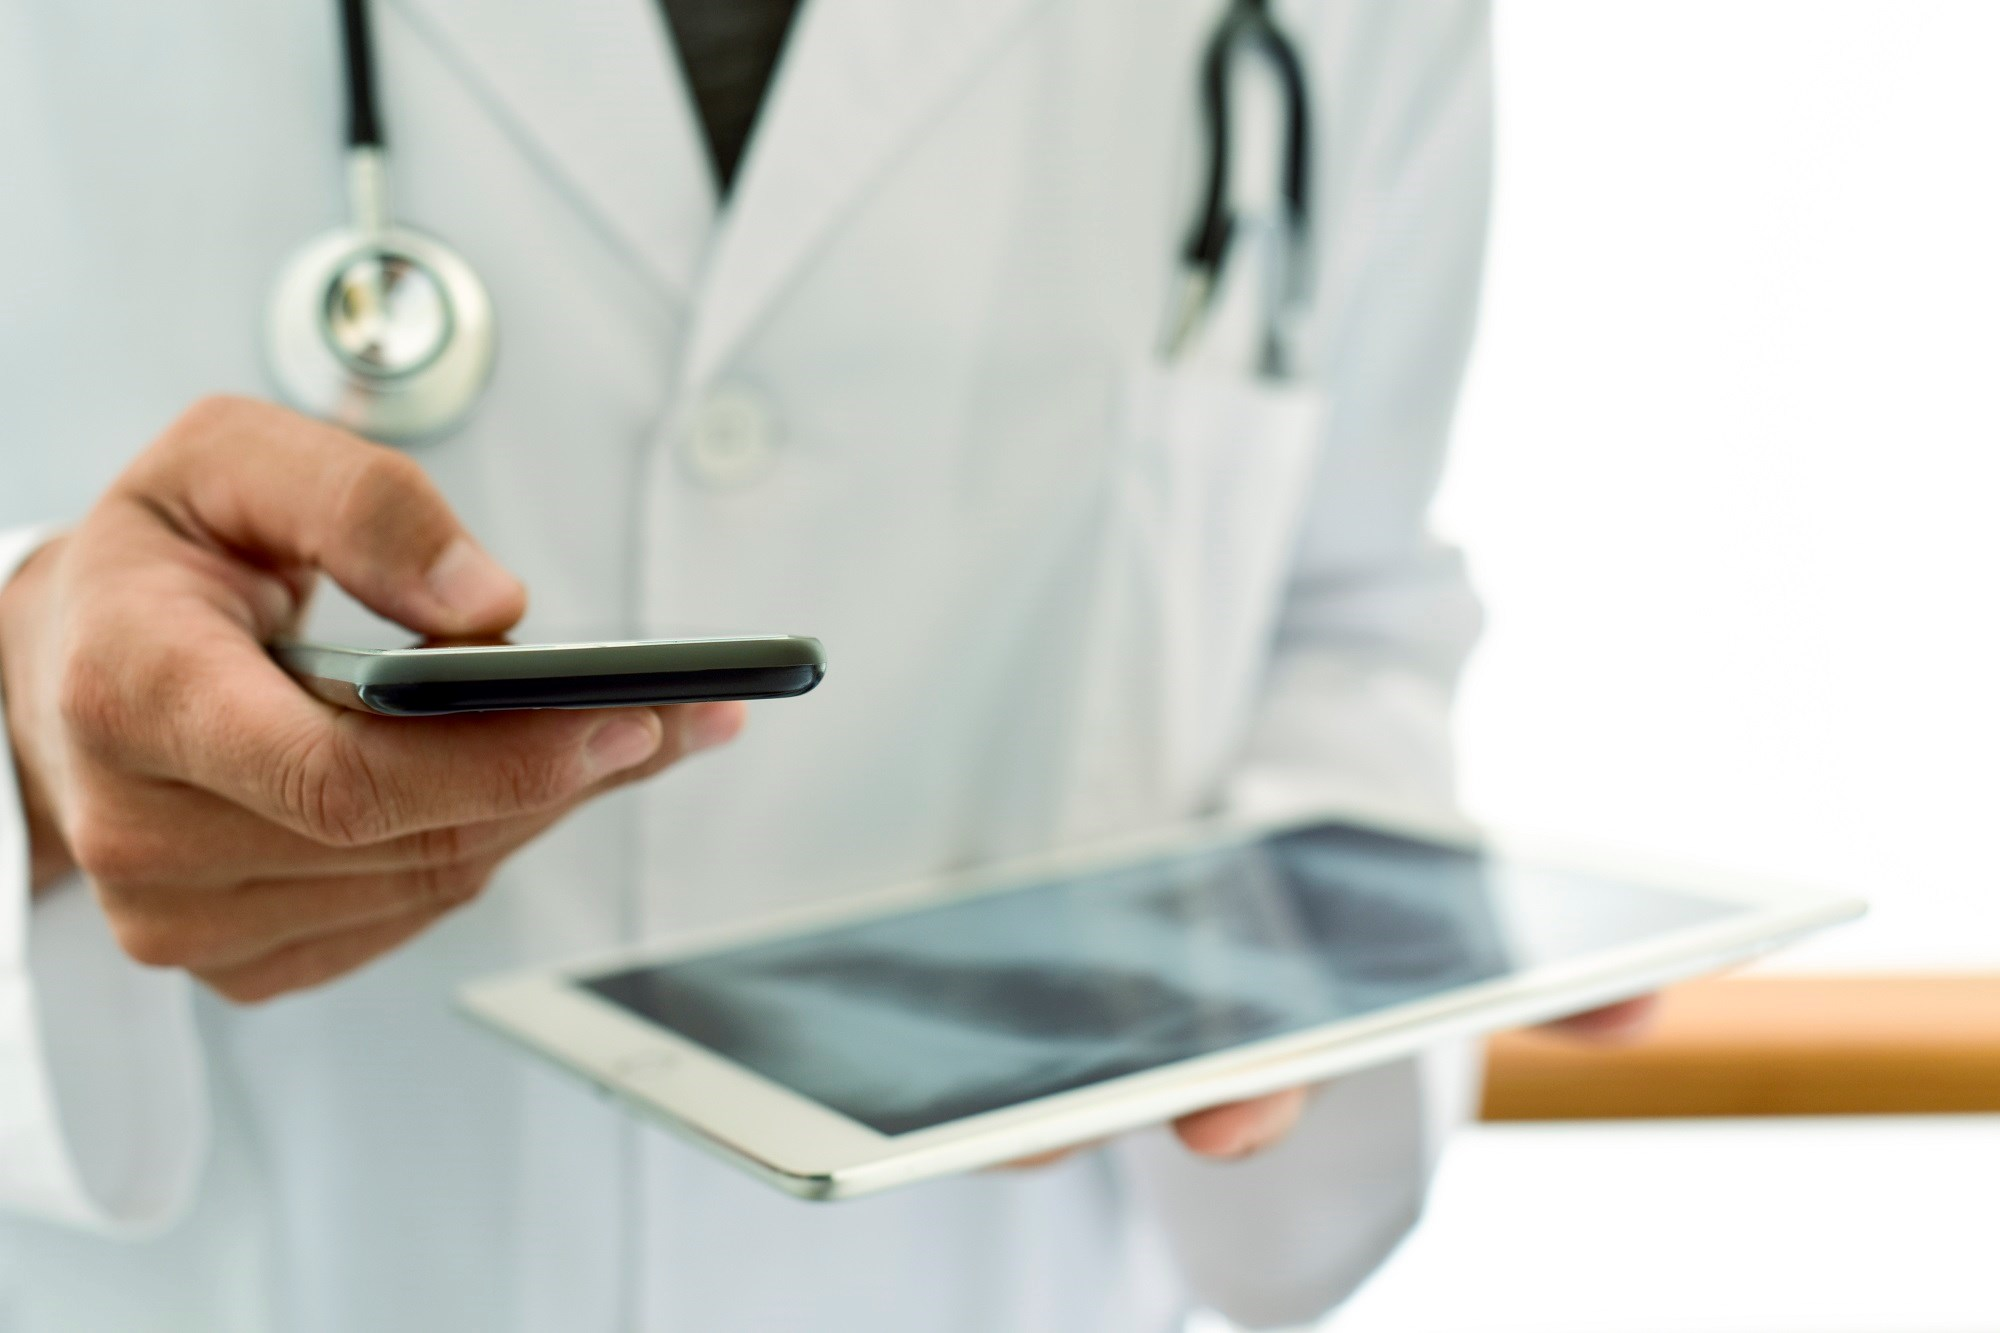 Behavioral activation for depression through telehealth may present an efficient and cost-effective alternative to in-person treatment.